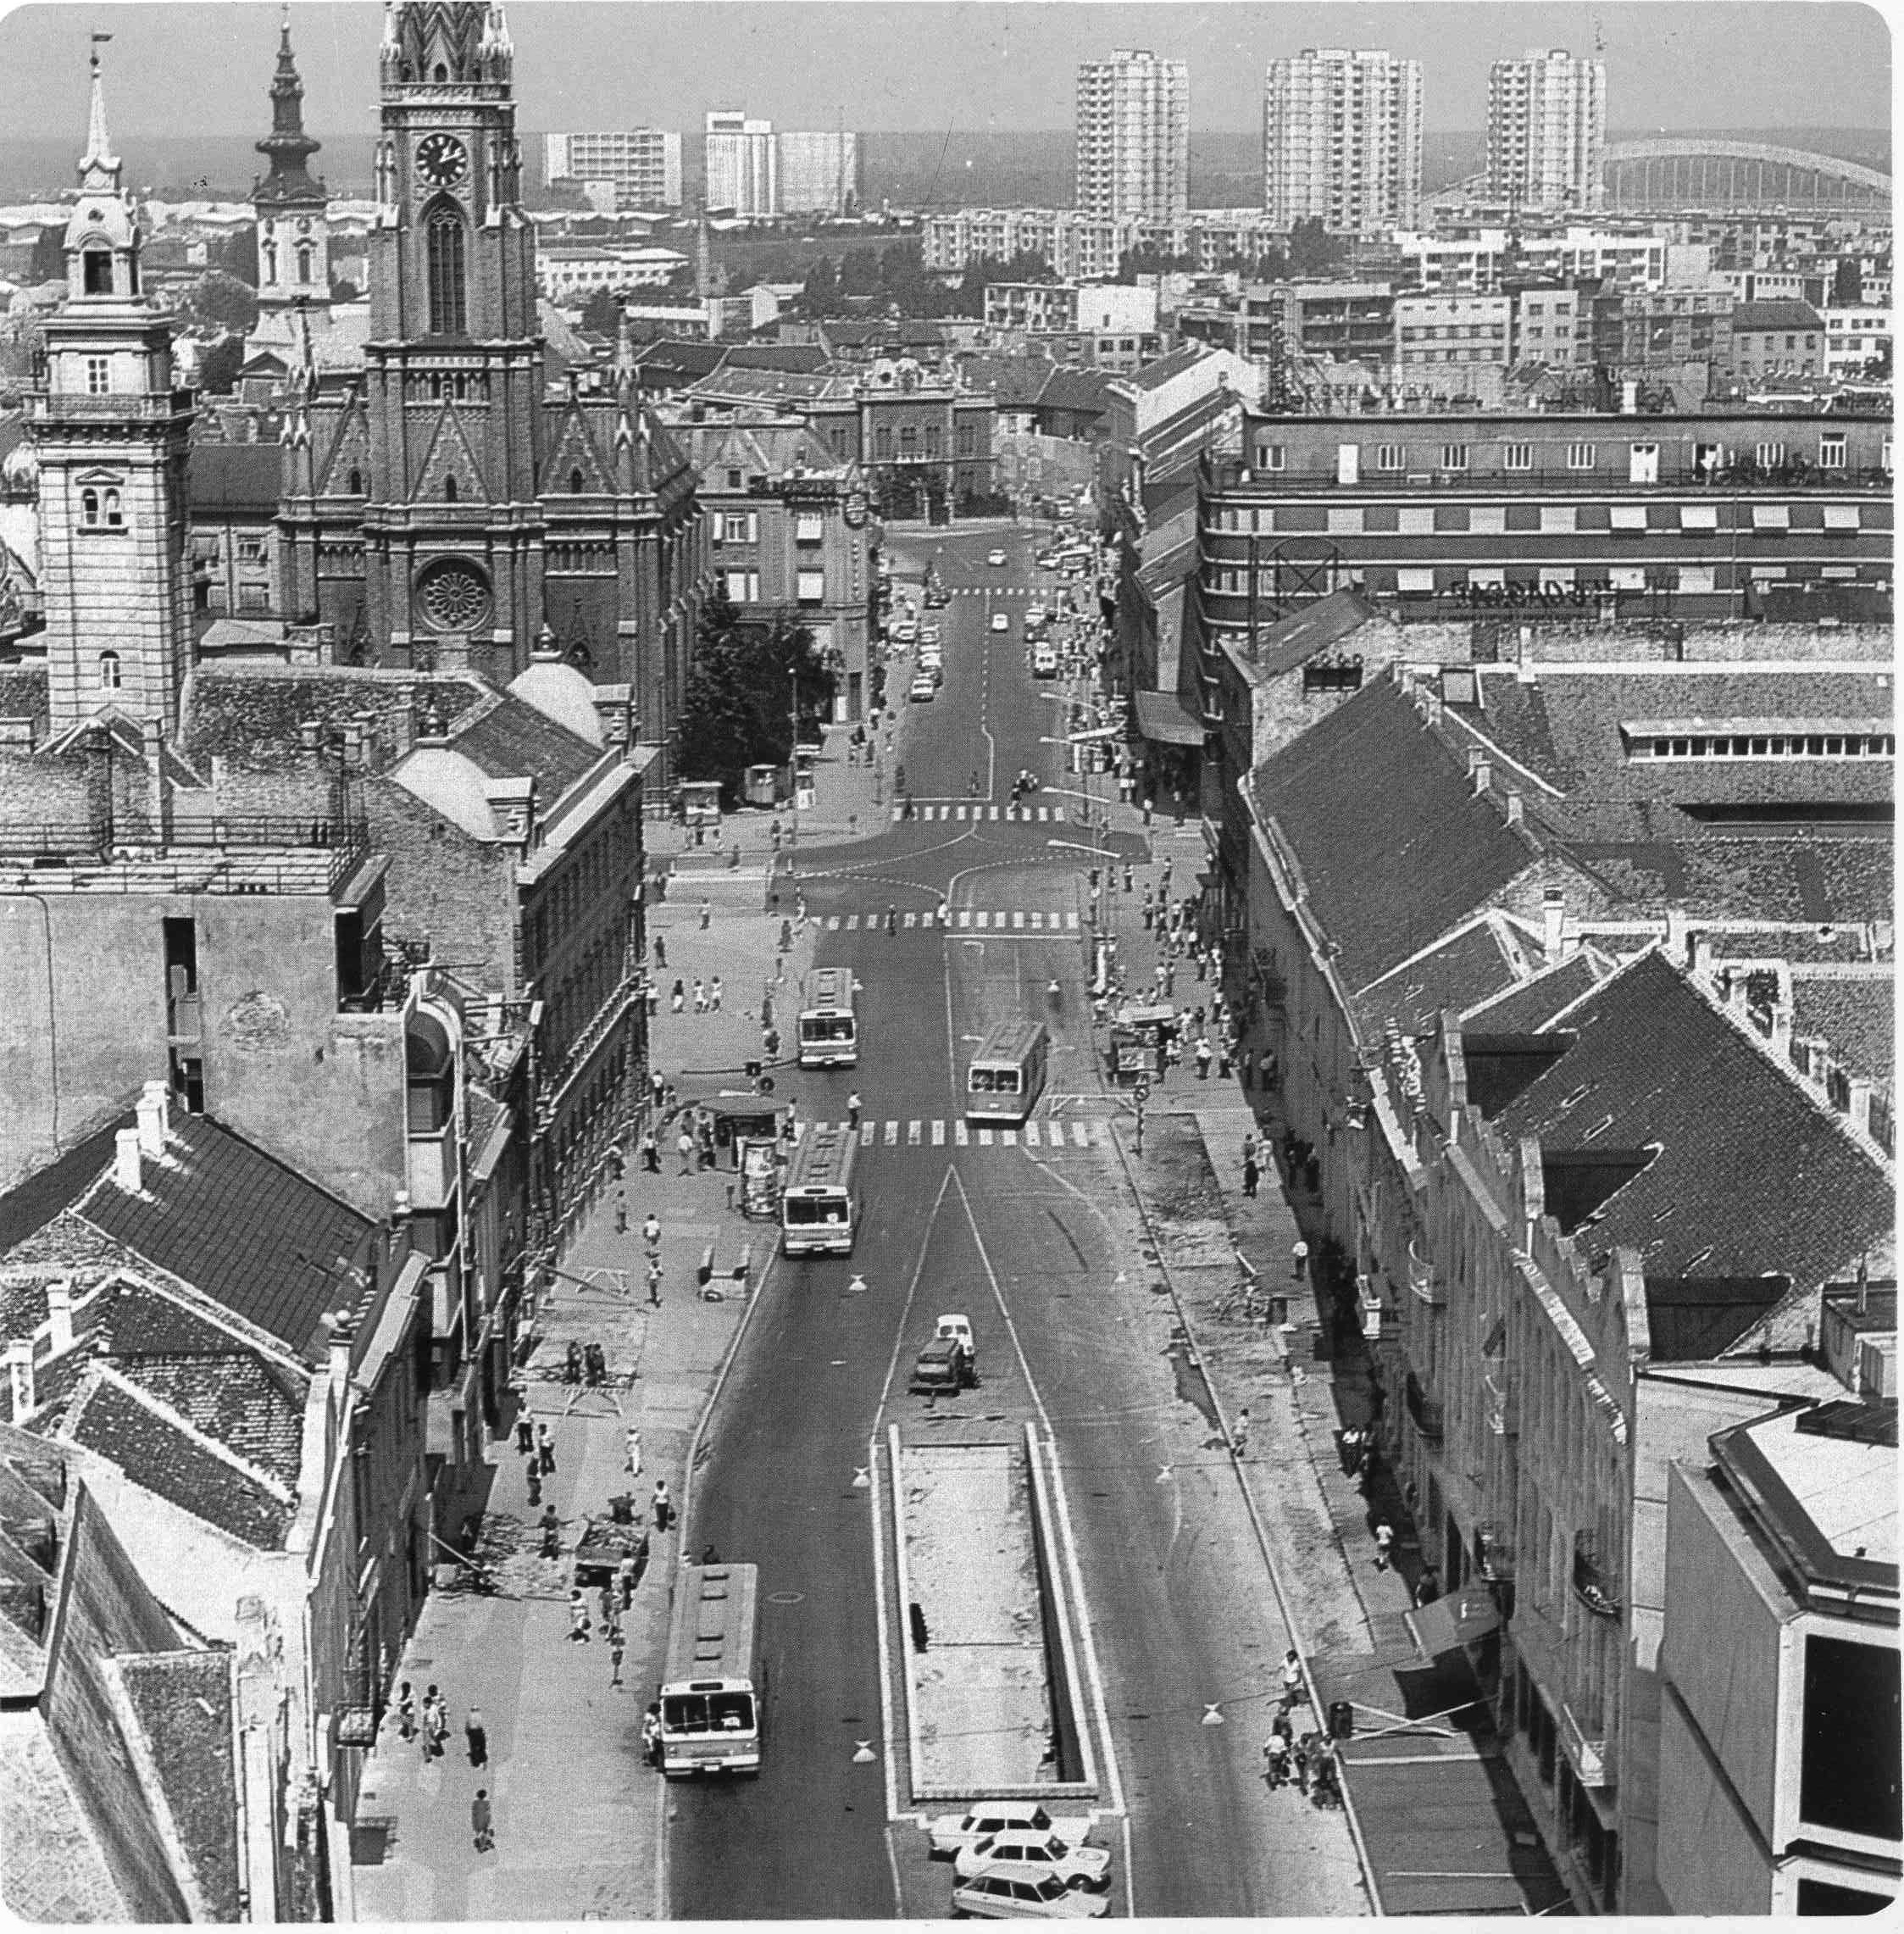 A look down the Capital's main avenue, circa 1962.